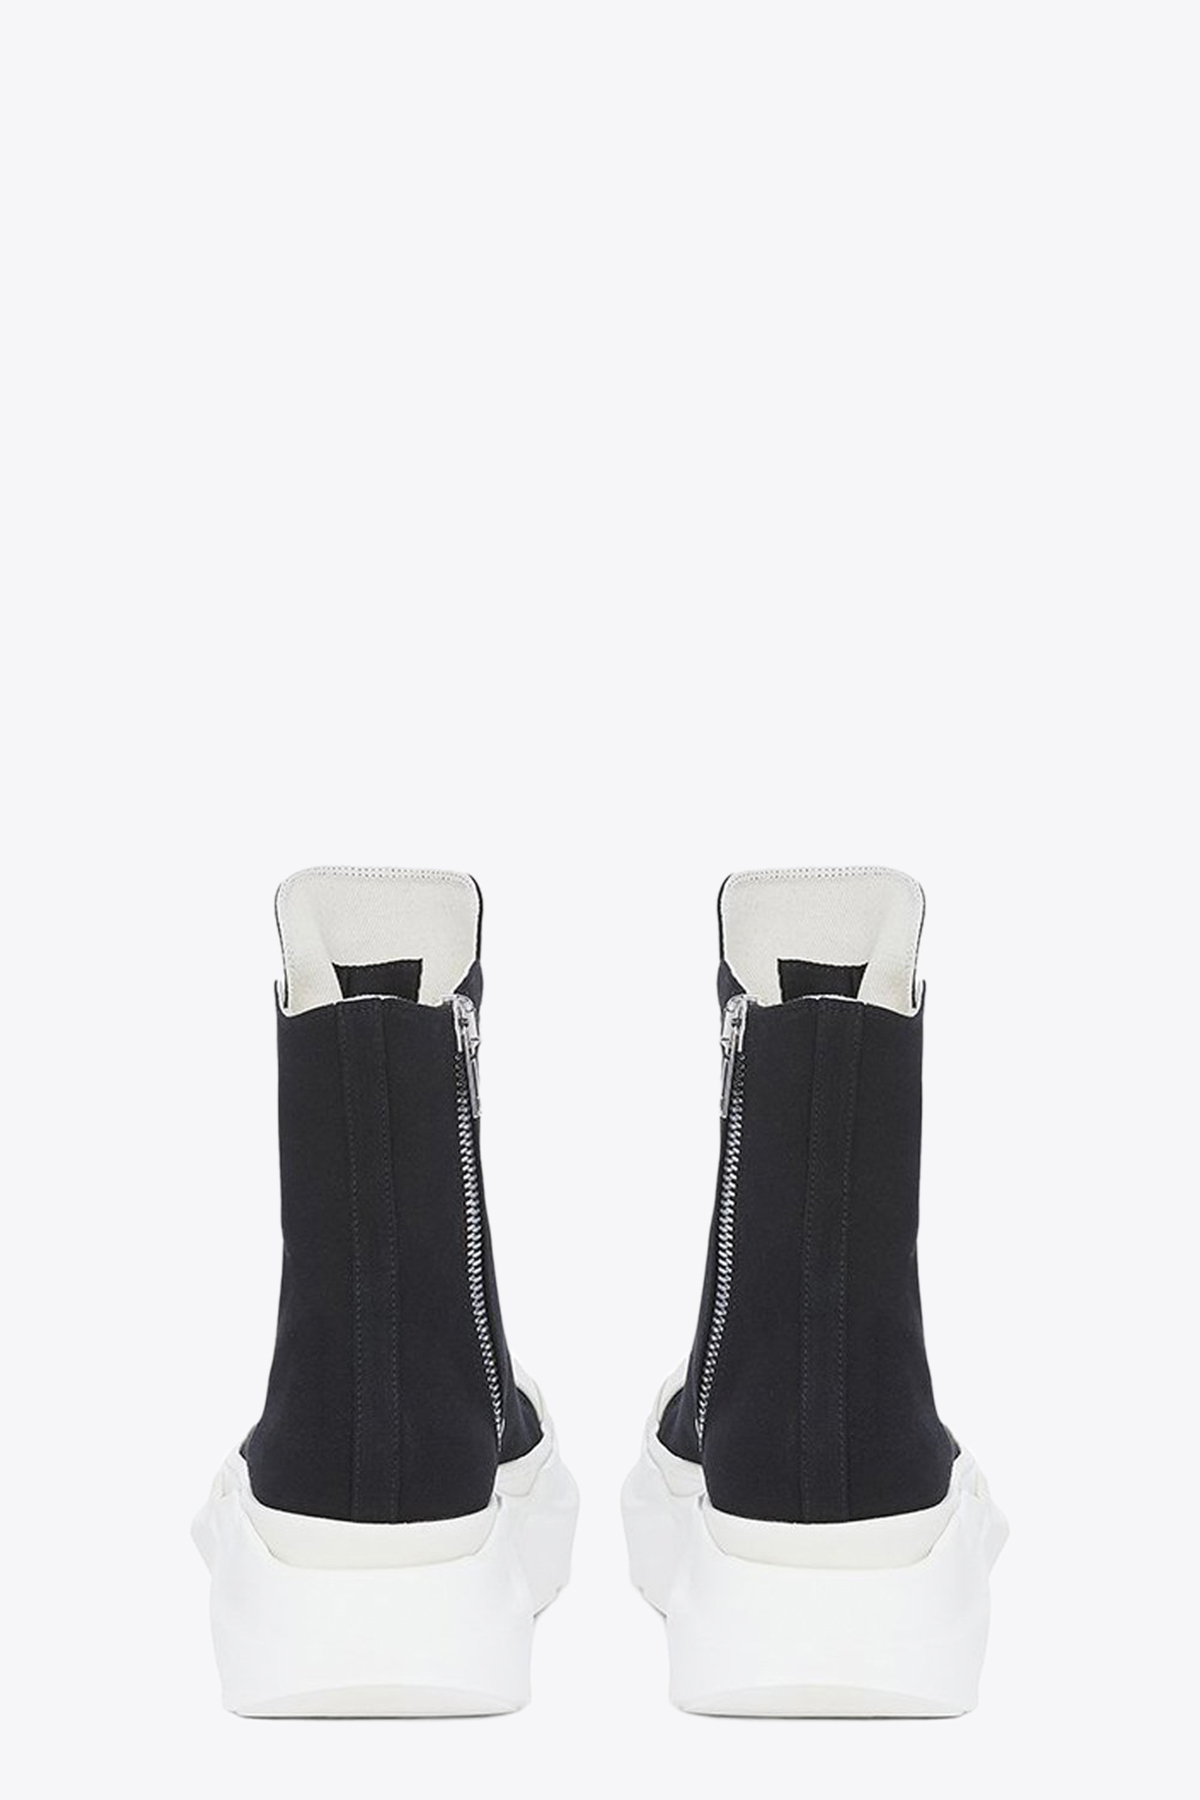 ABSTRACT SNEAKERS RICK OWENS-DRKSHDW | 10000039 | DU21S2840 TNAP ABSTRACT SNEAKERS91111